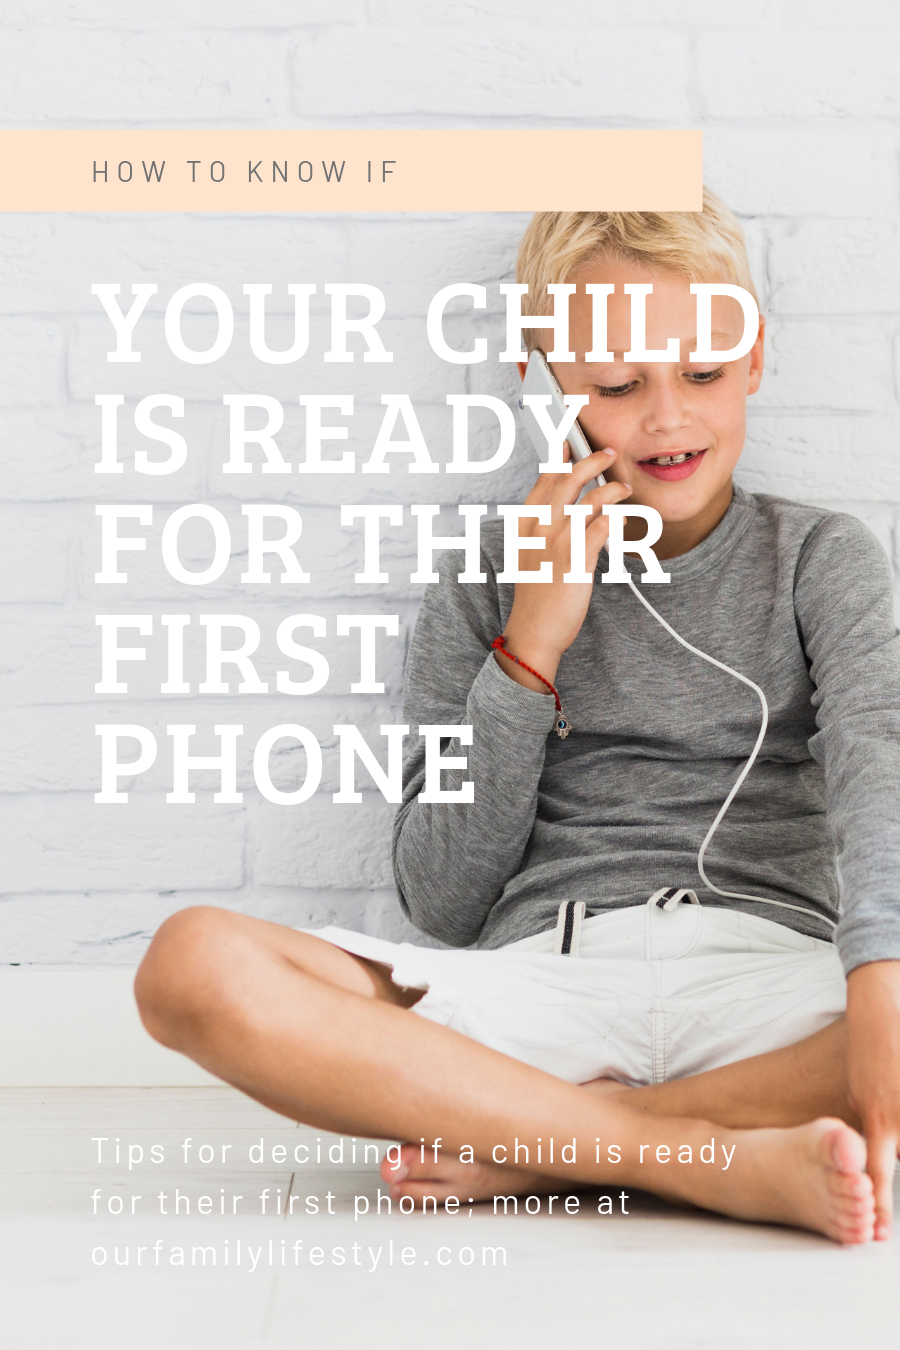 How to Know if Your Child is Ready for Their First Phone